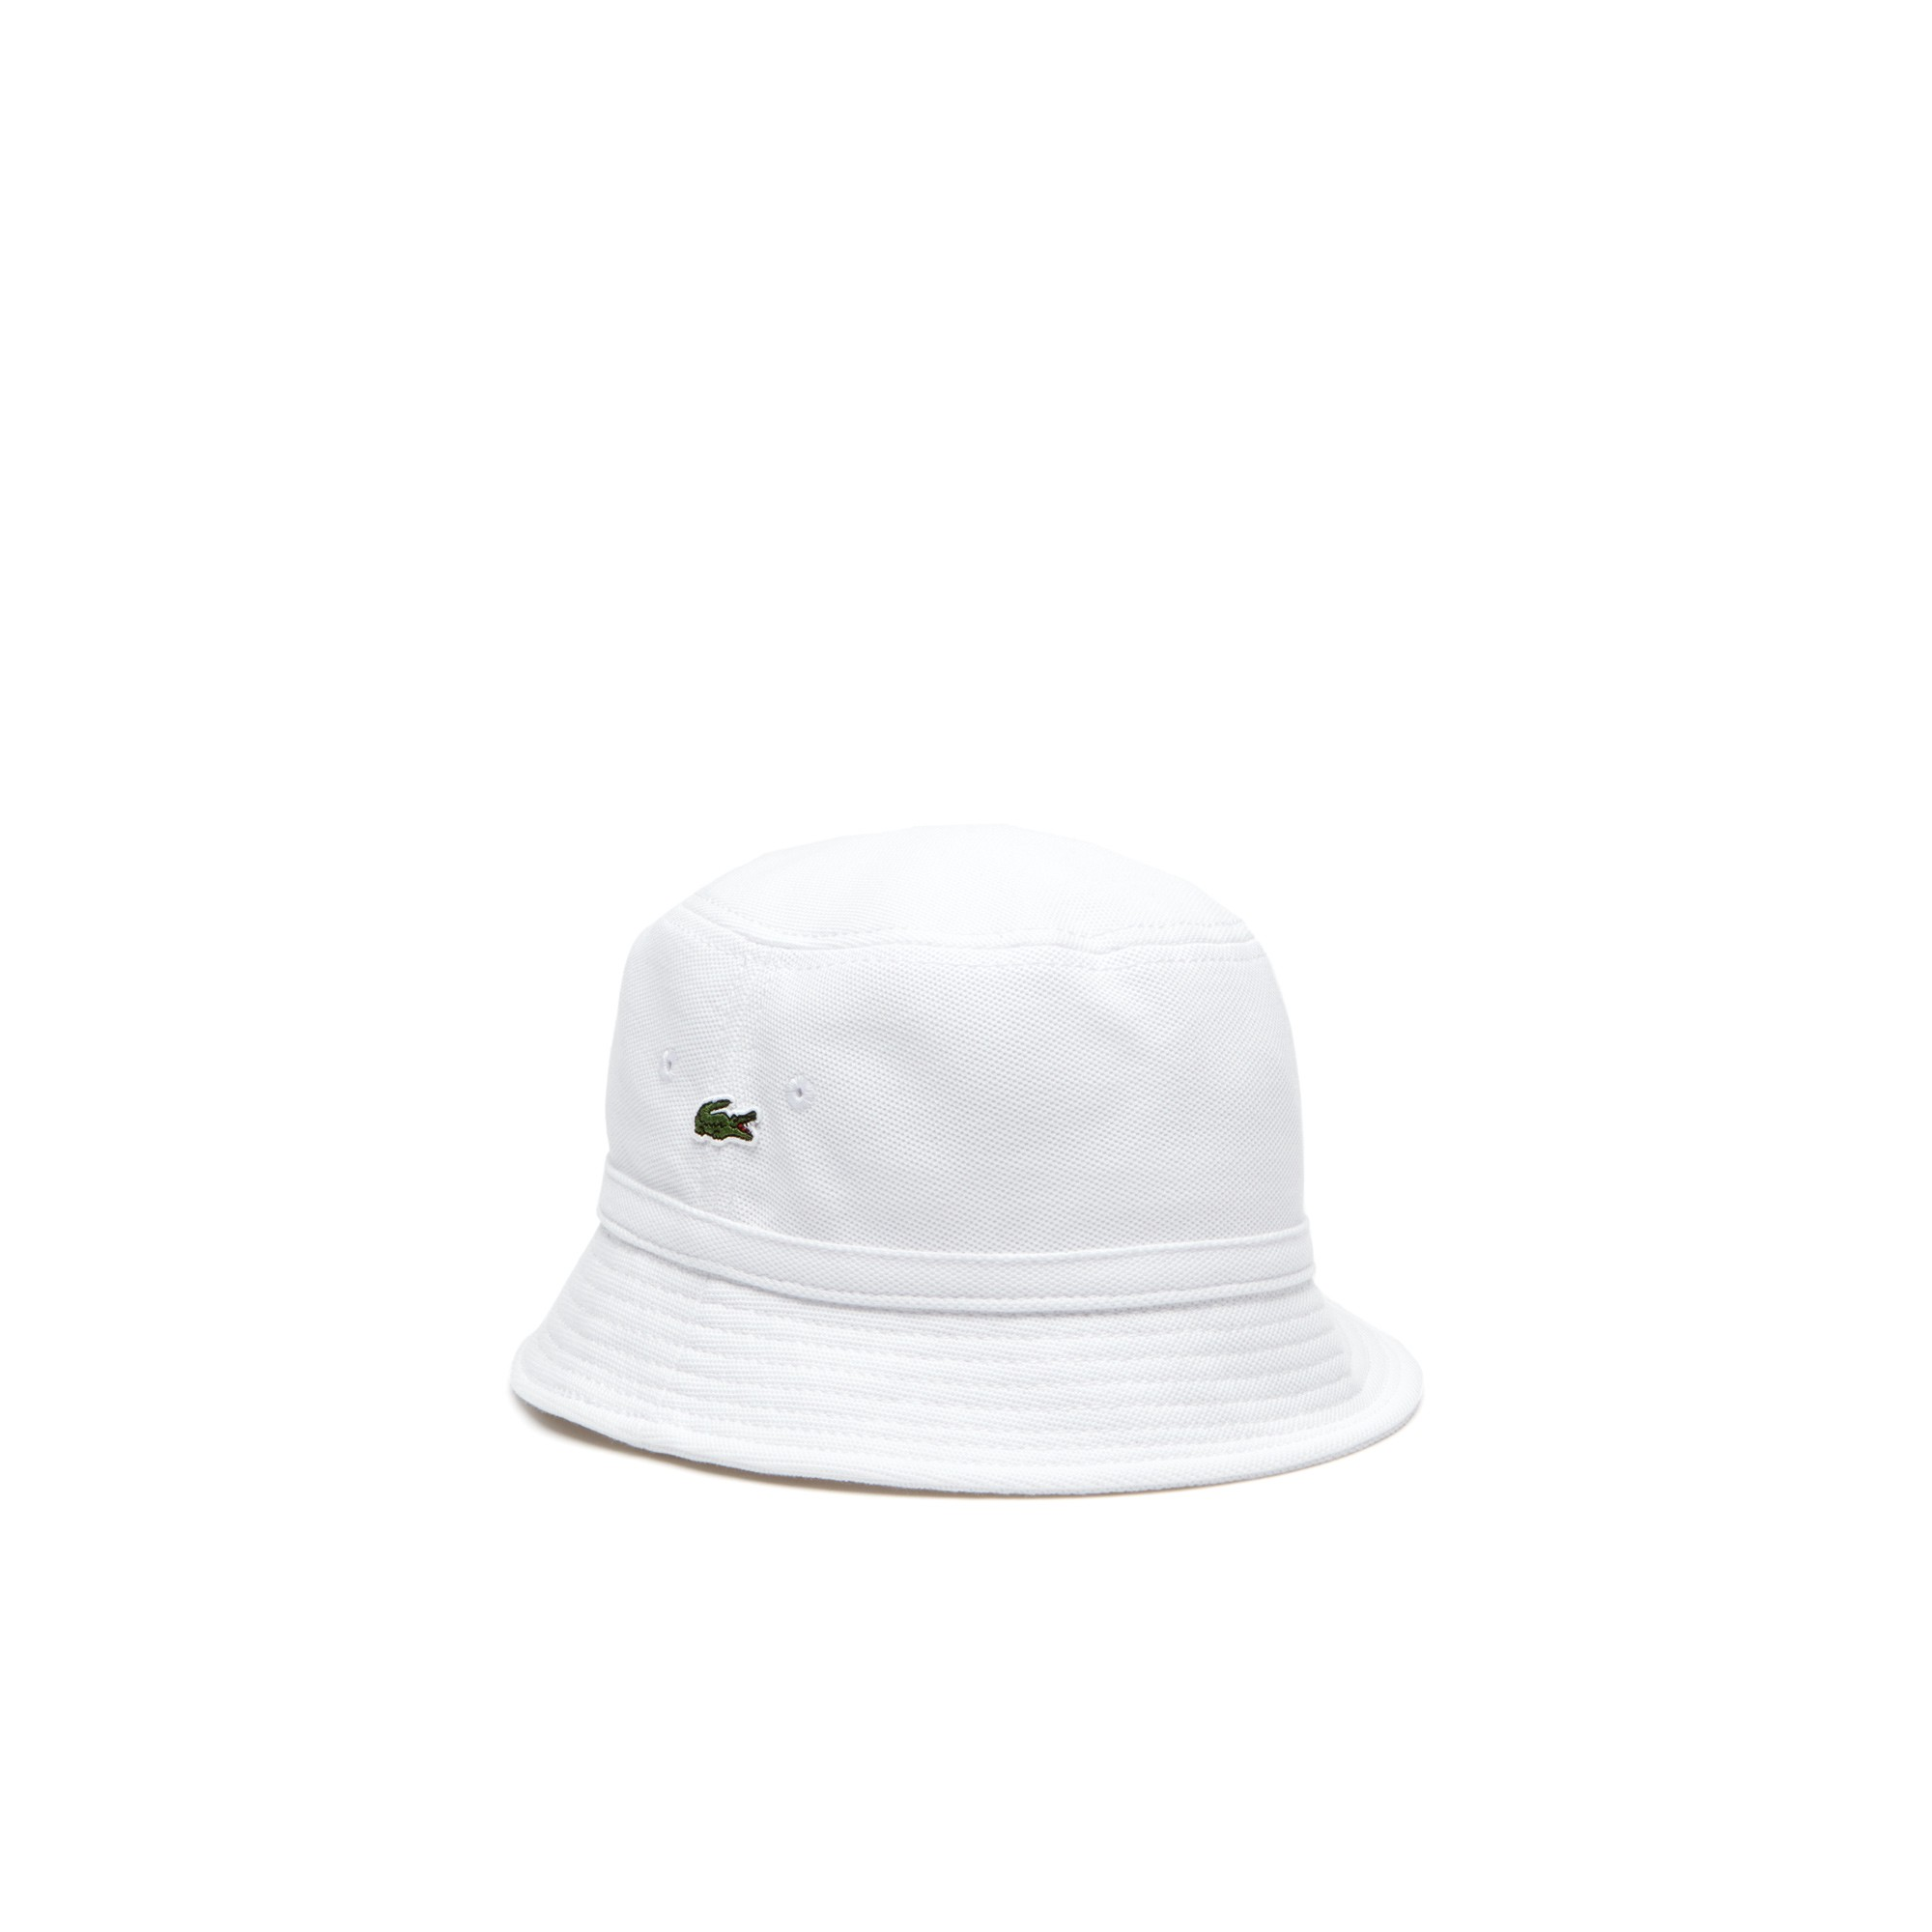 6fedb462fd8 Lacoste Men s Cotton Piqué Bucket Hat - Silver Grey Chine M ...